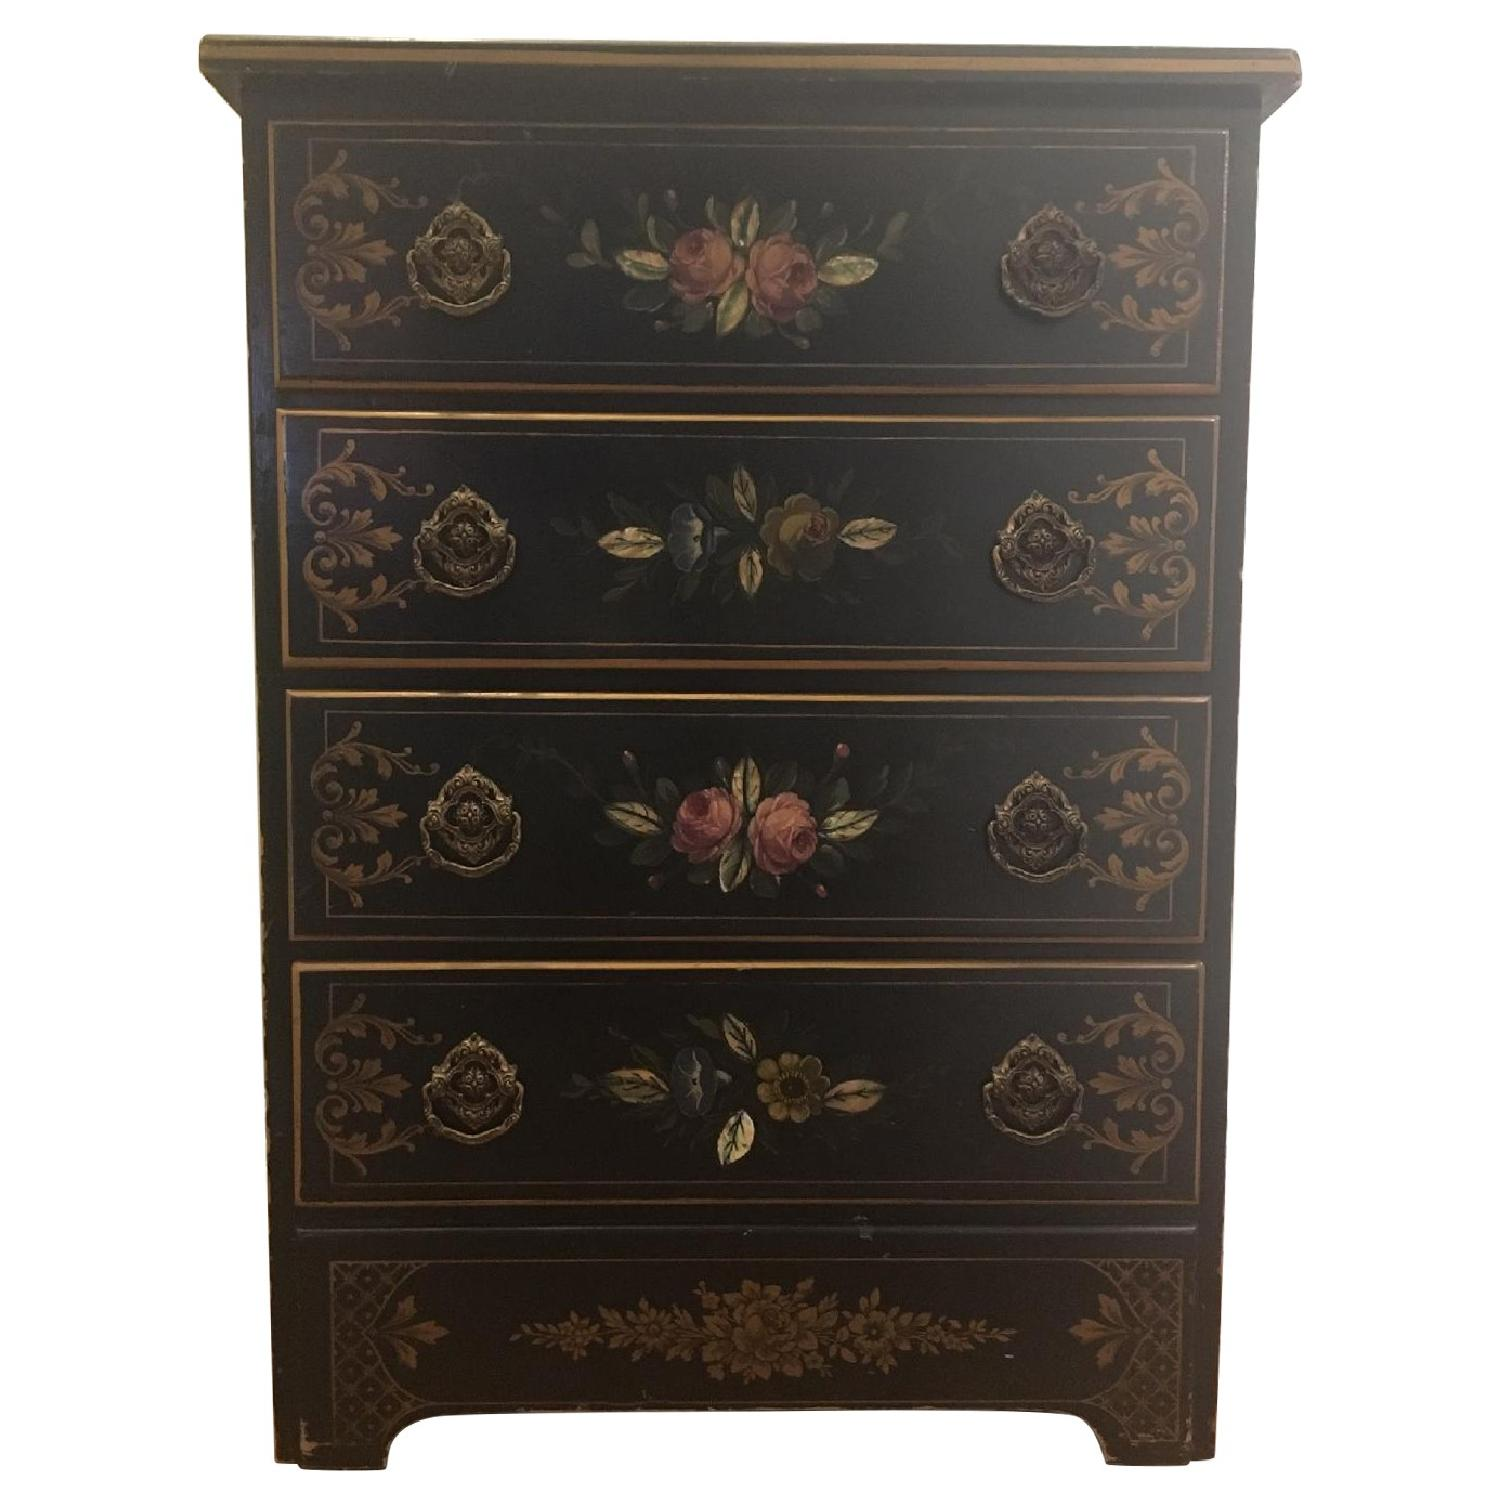 Antique Hand Painted Flowers Mother of Pearl Inlay Dresser